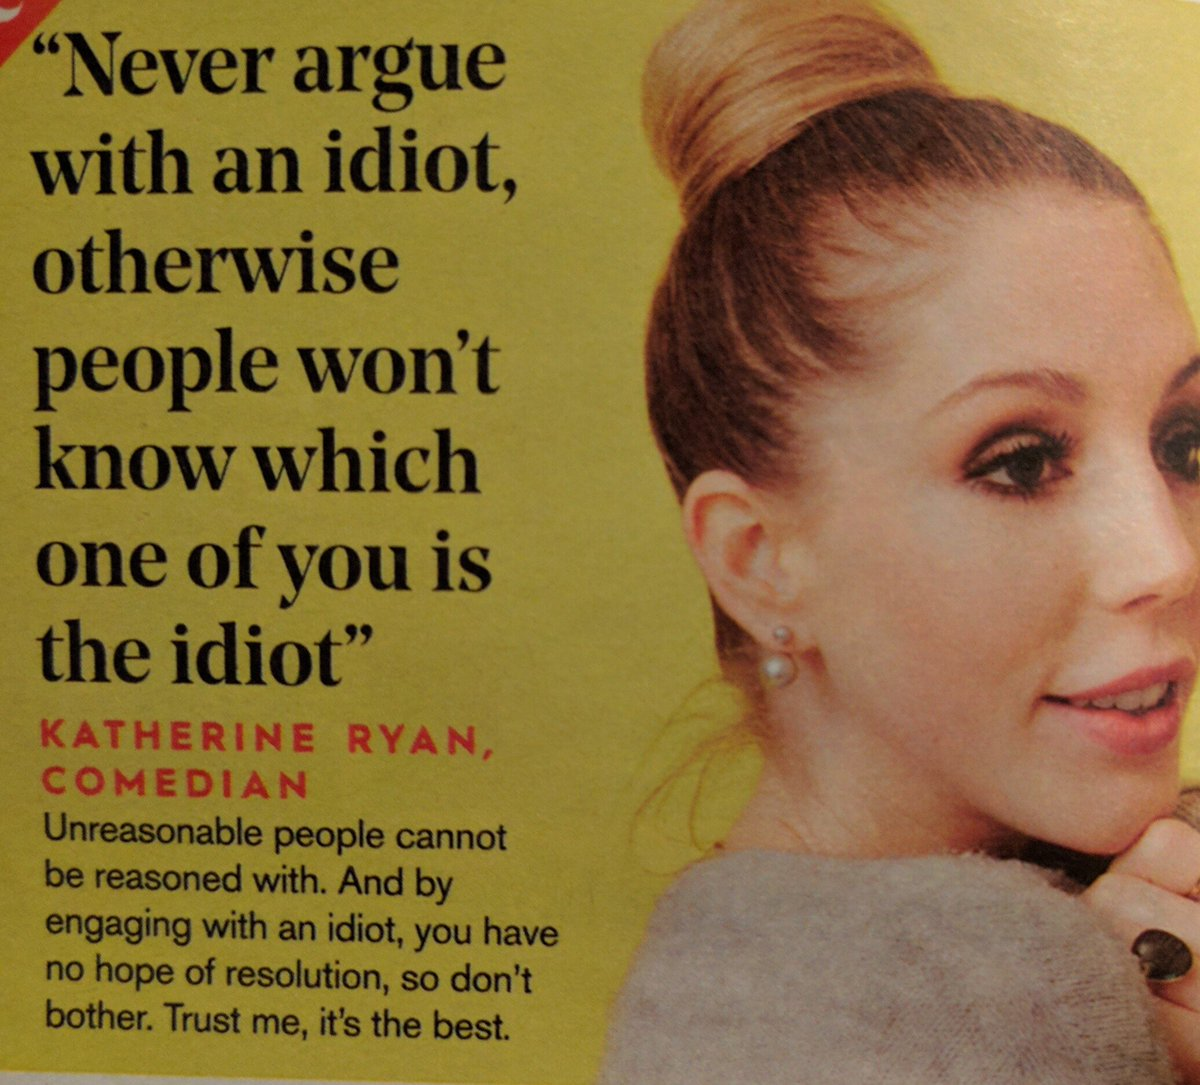 Great advice from @Kathbum Wish I'd read this a few days ago. Oh well. https://t.co/bjXdjMGjjd